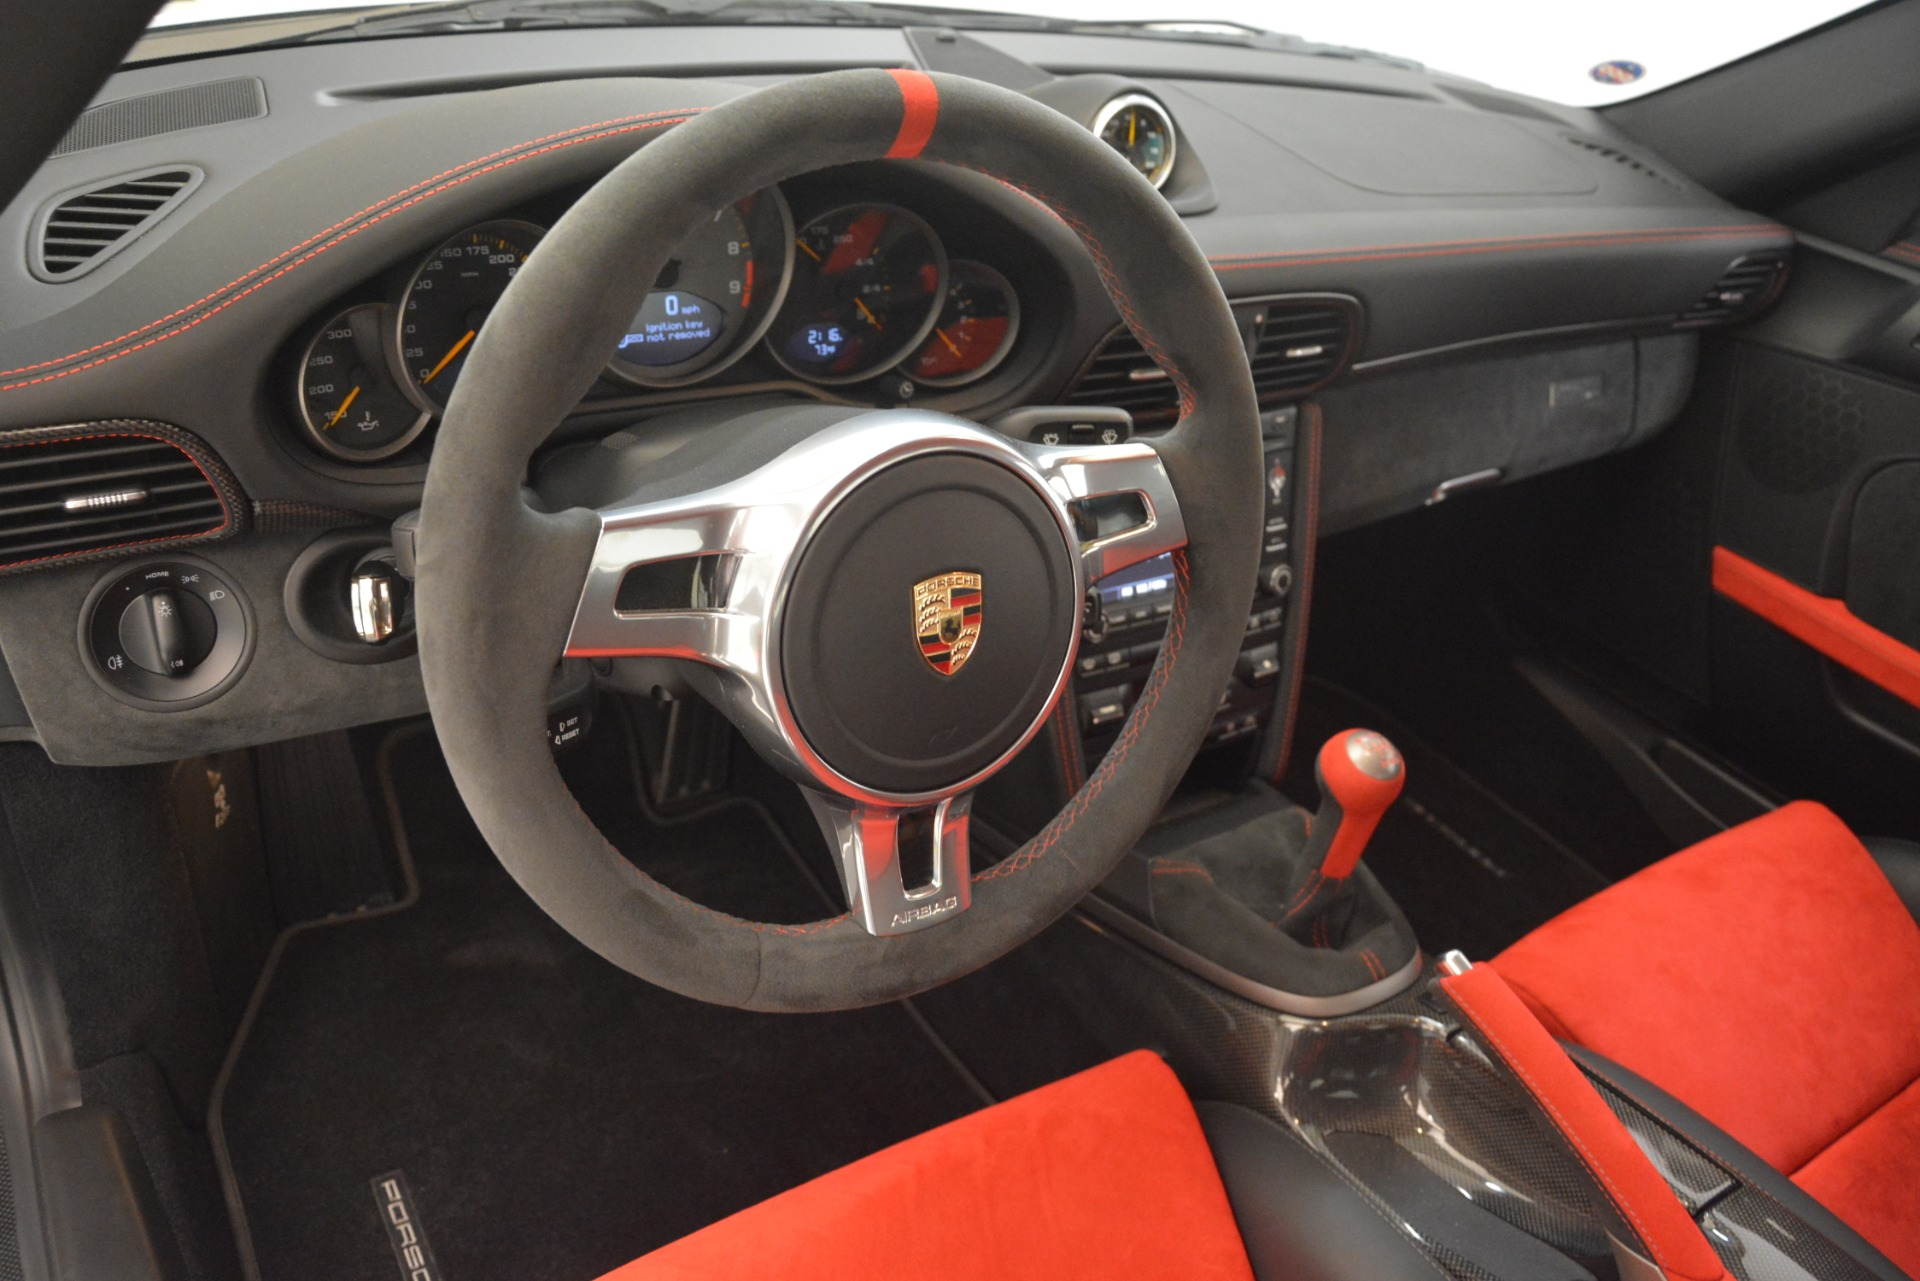 Used 2011 Porsche 911 GT3 RS 4.0 For Sale In Greenwich, CT 3188_p17